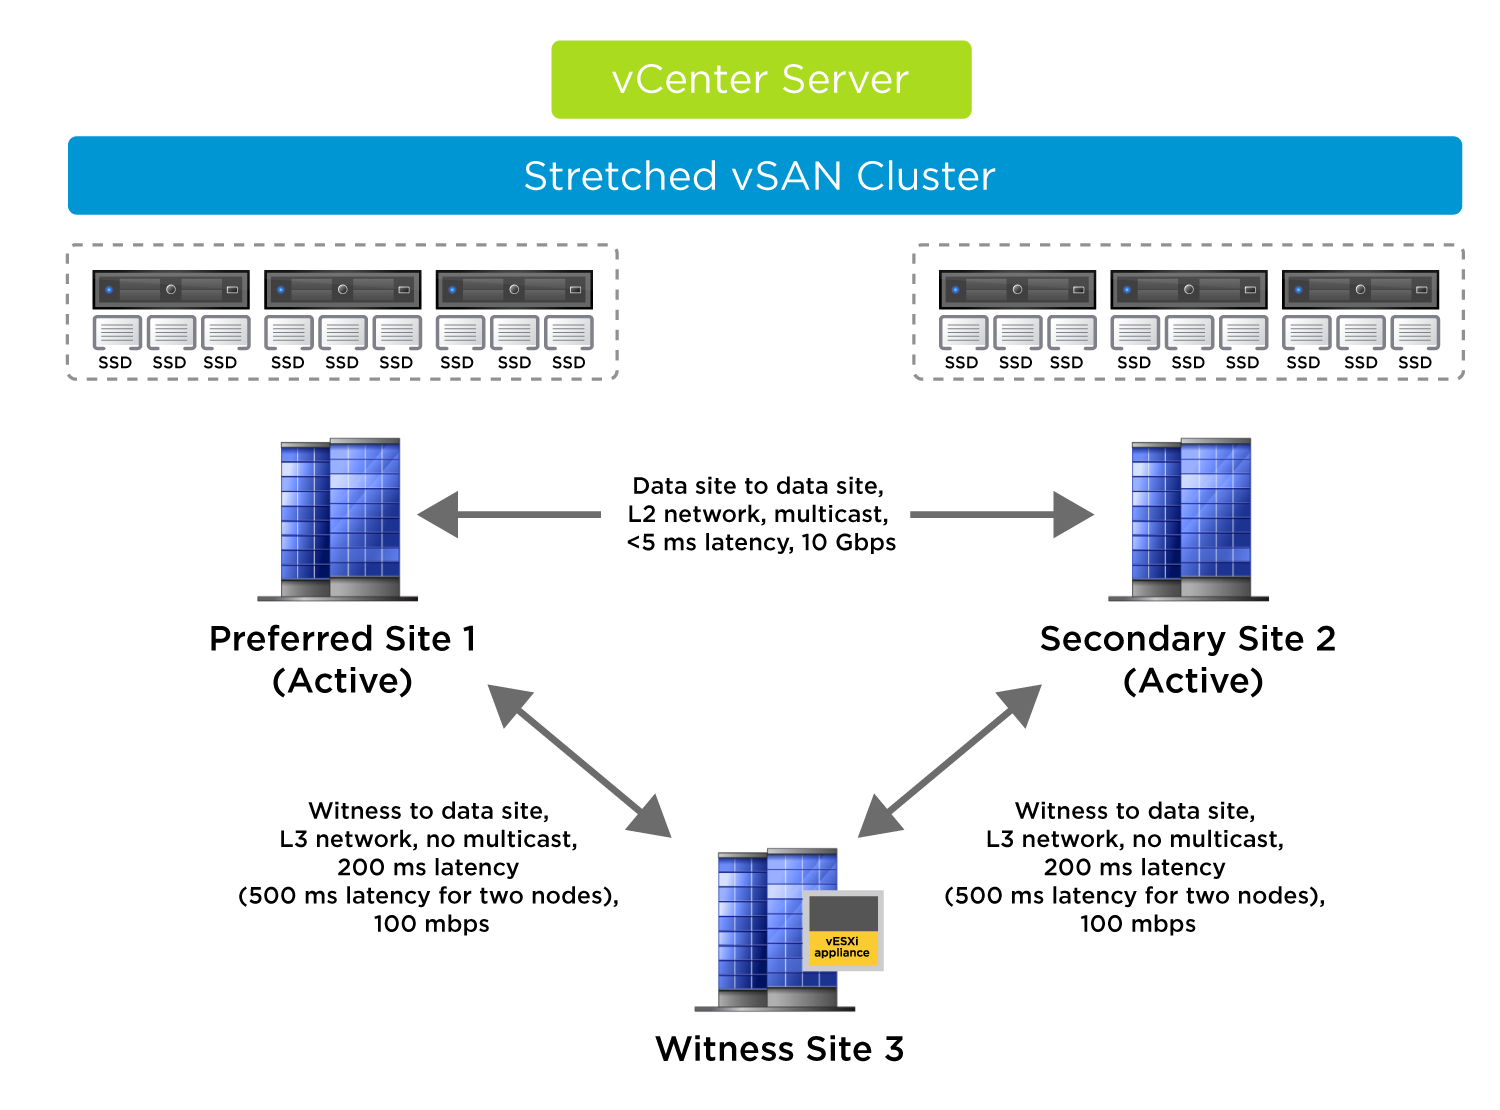 Networking for a vSAN Stretched Cluster